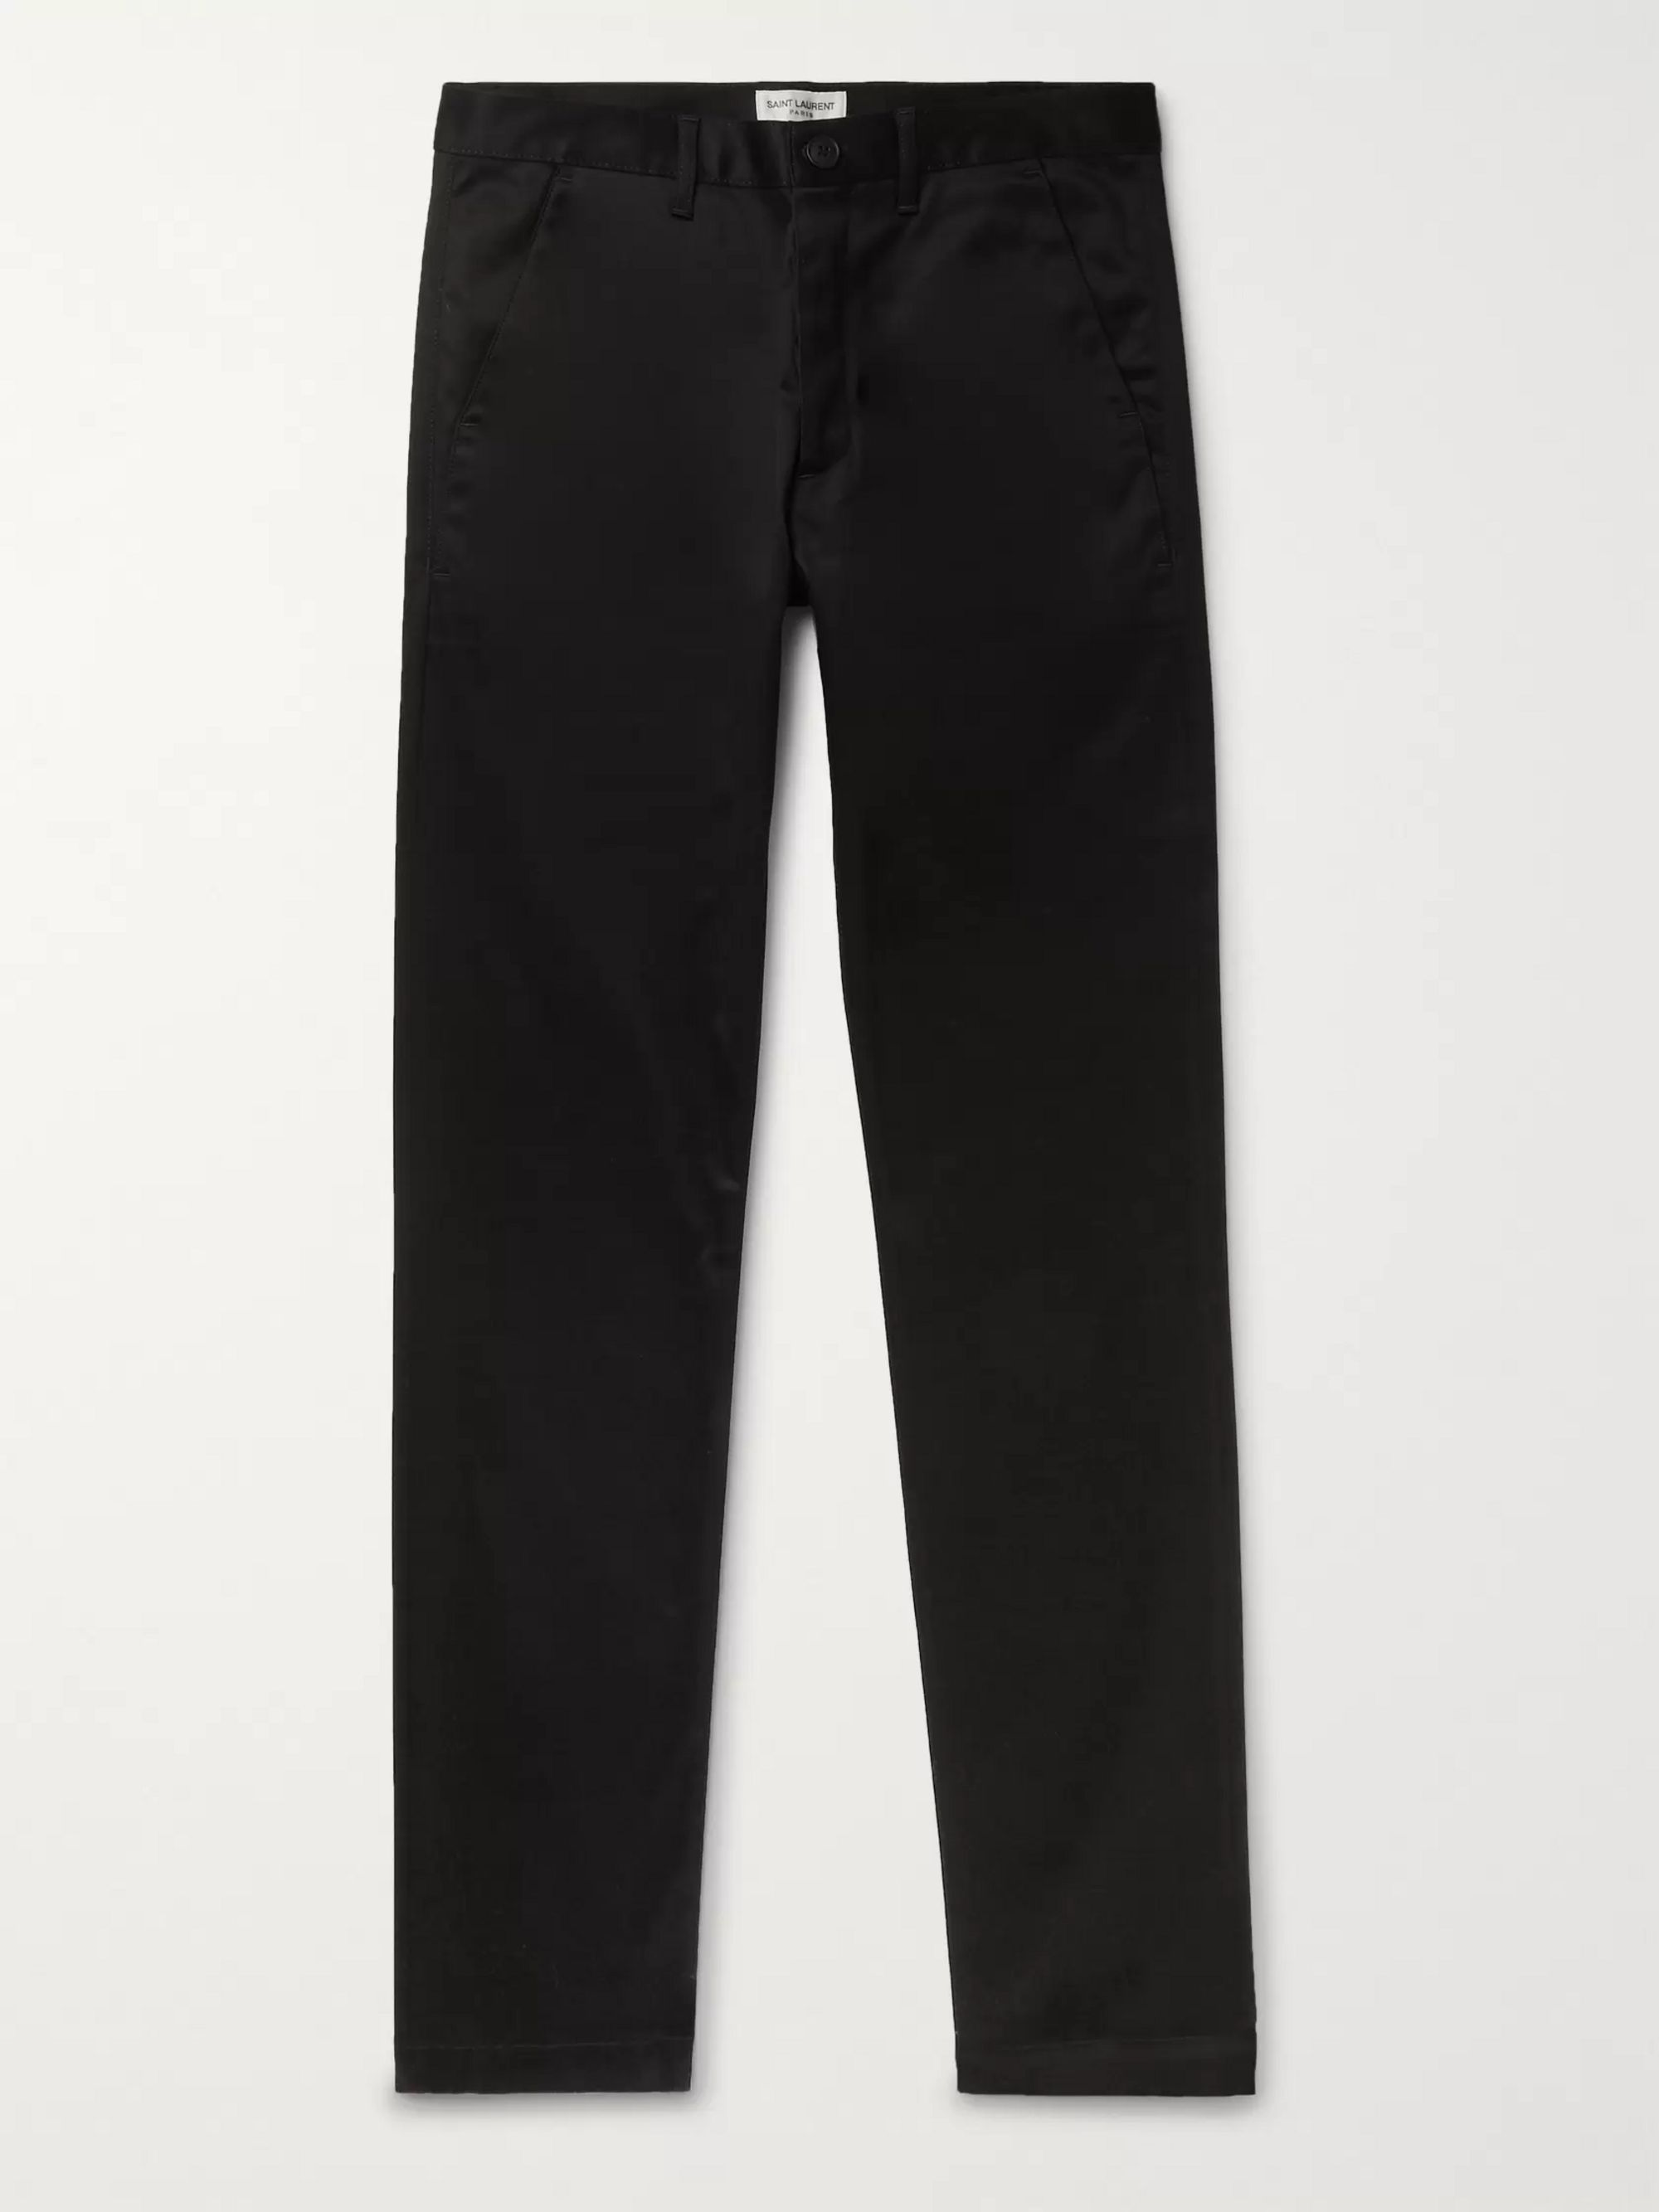 SAINT LAURENT Black Slim-Fit Denim Chino Trousers